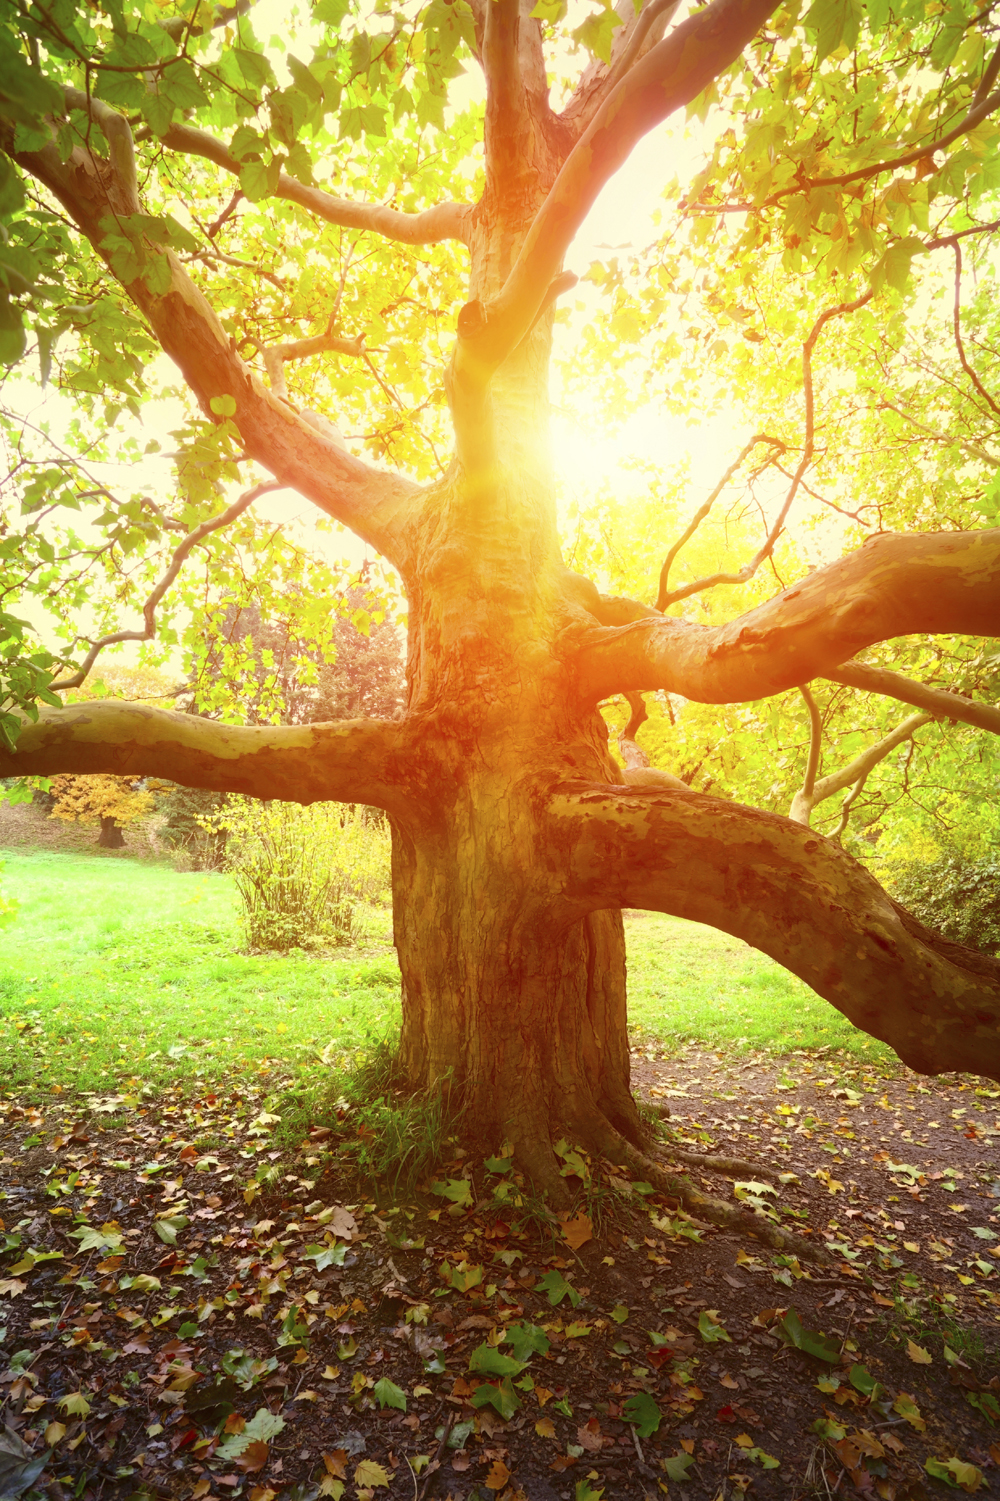 how to tell how old a sycamore tree is